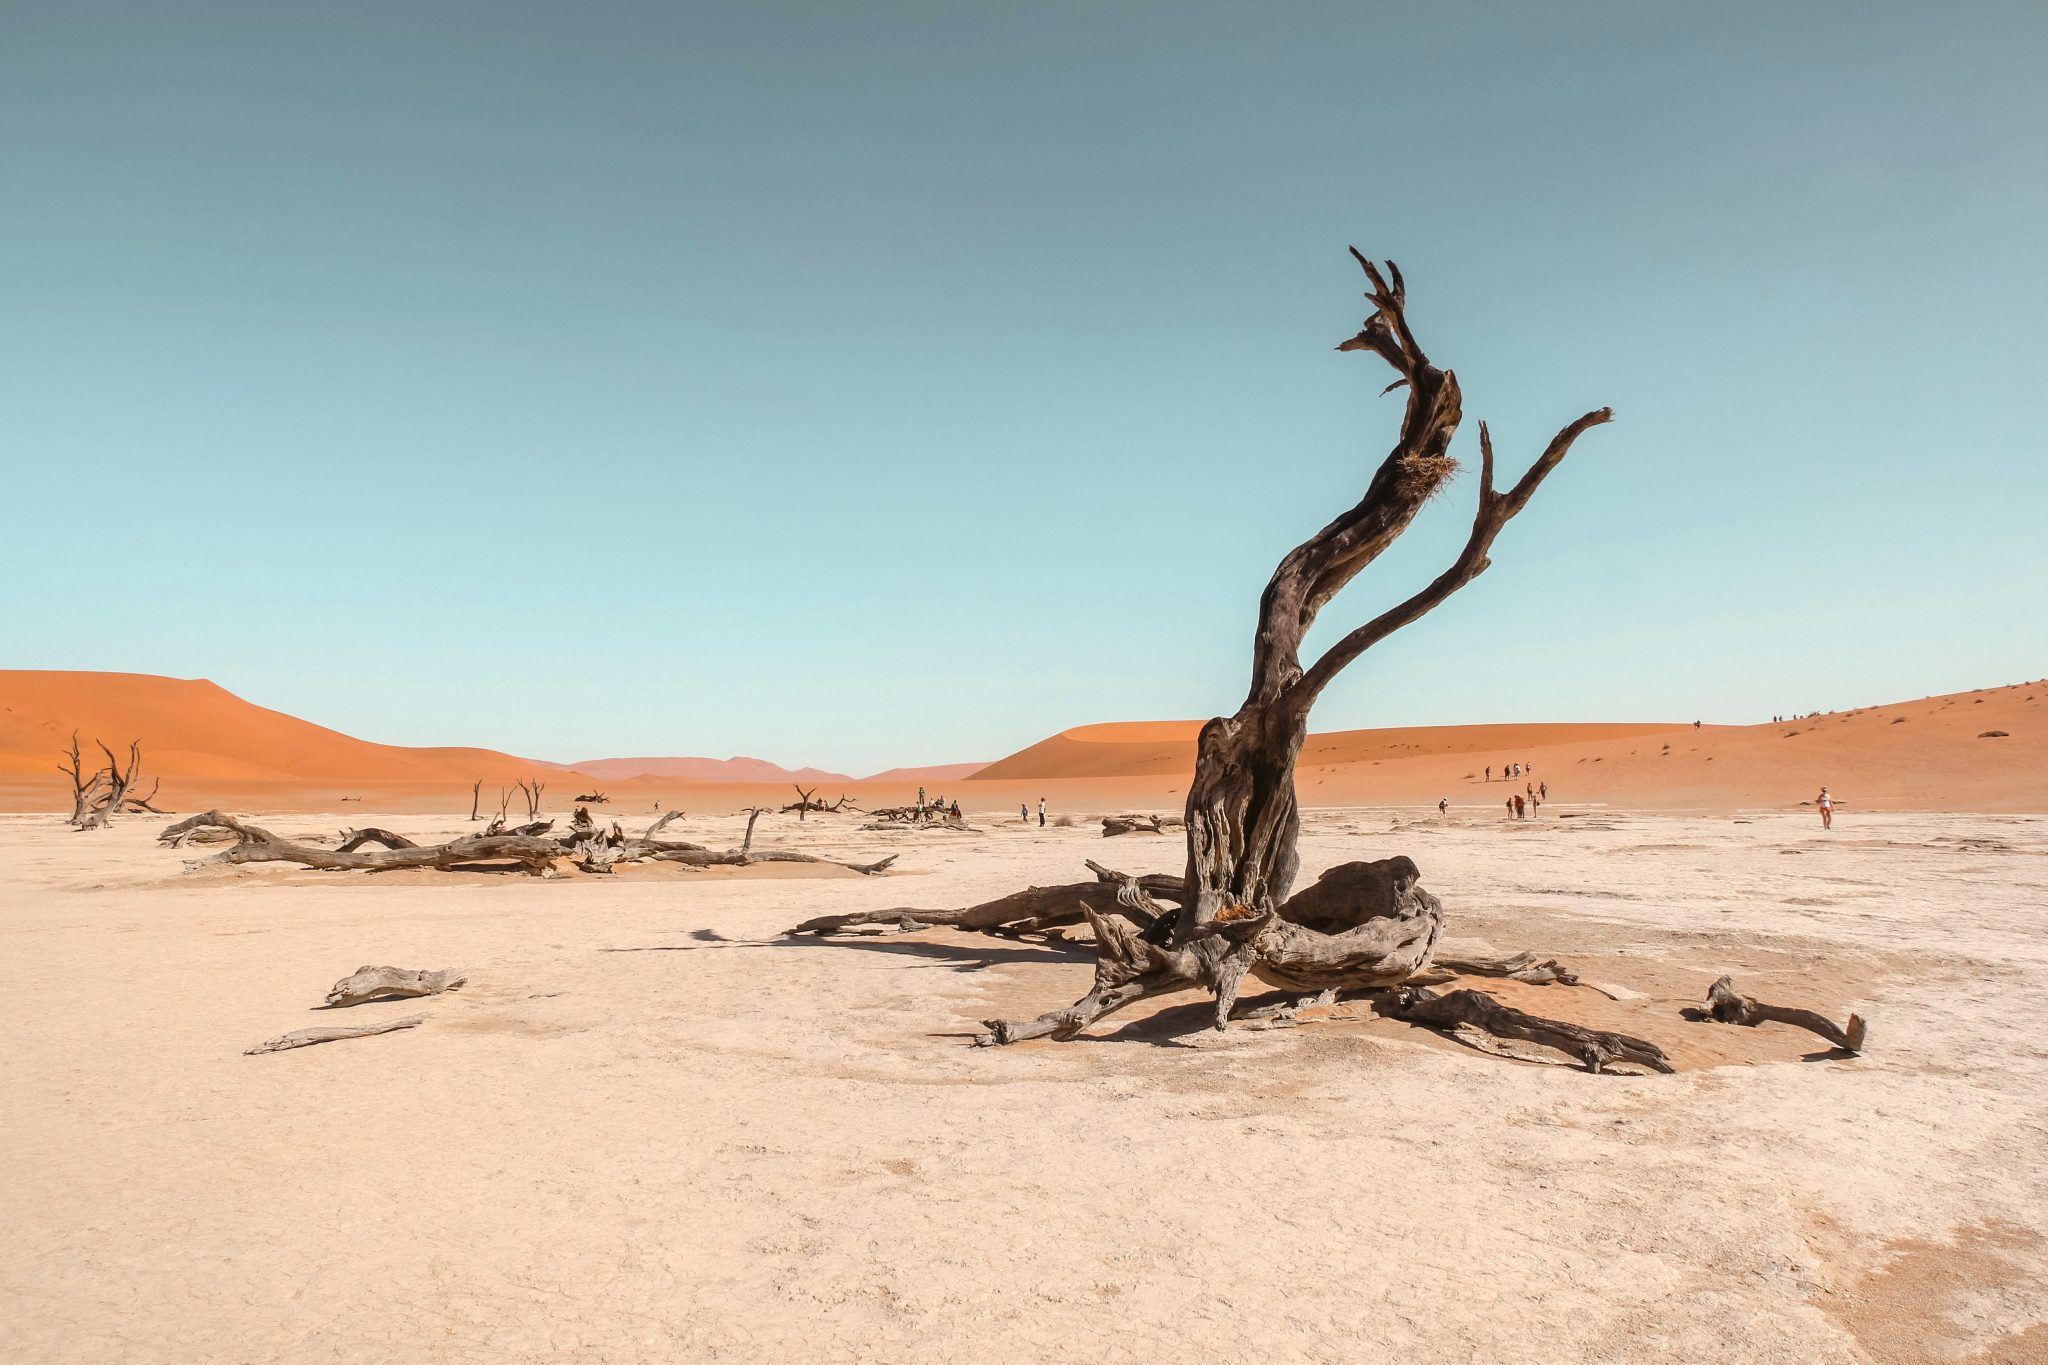 a dry, leafless tree in the desert